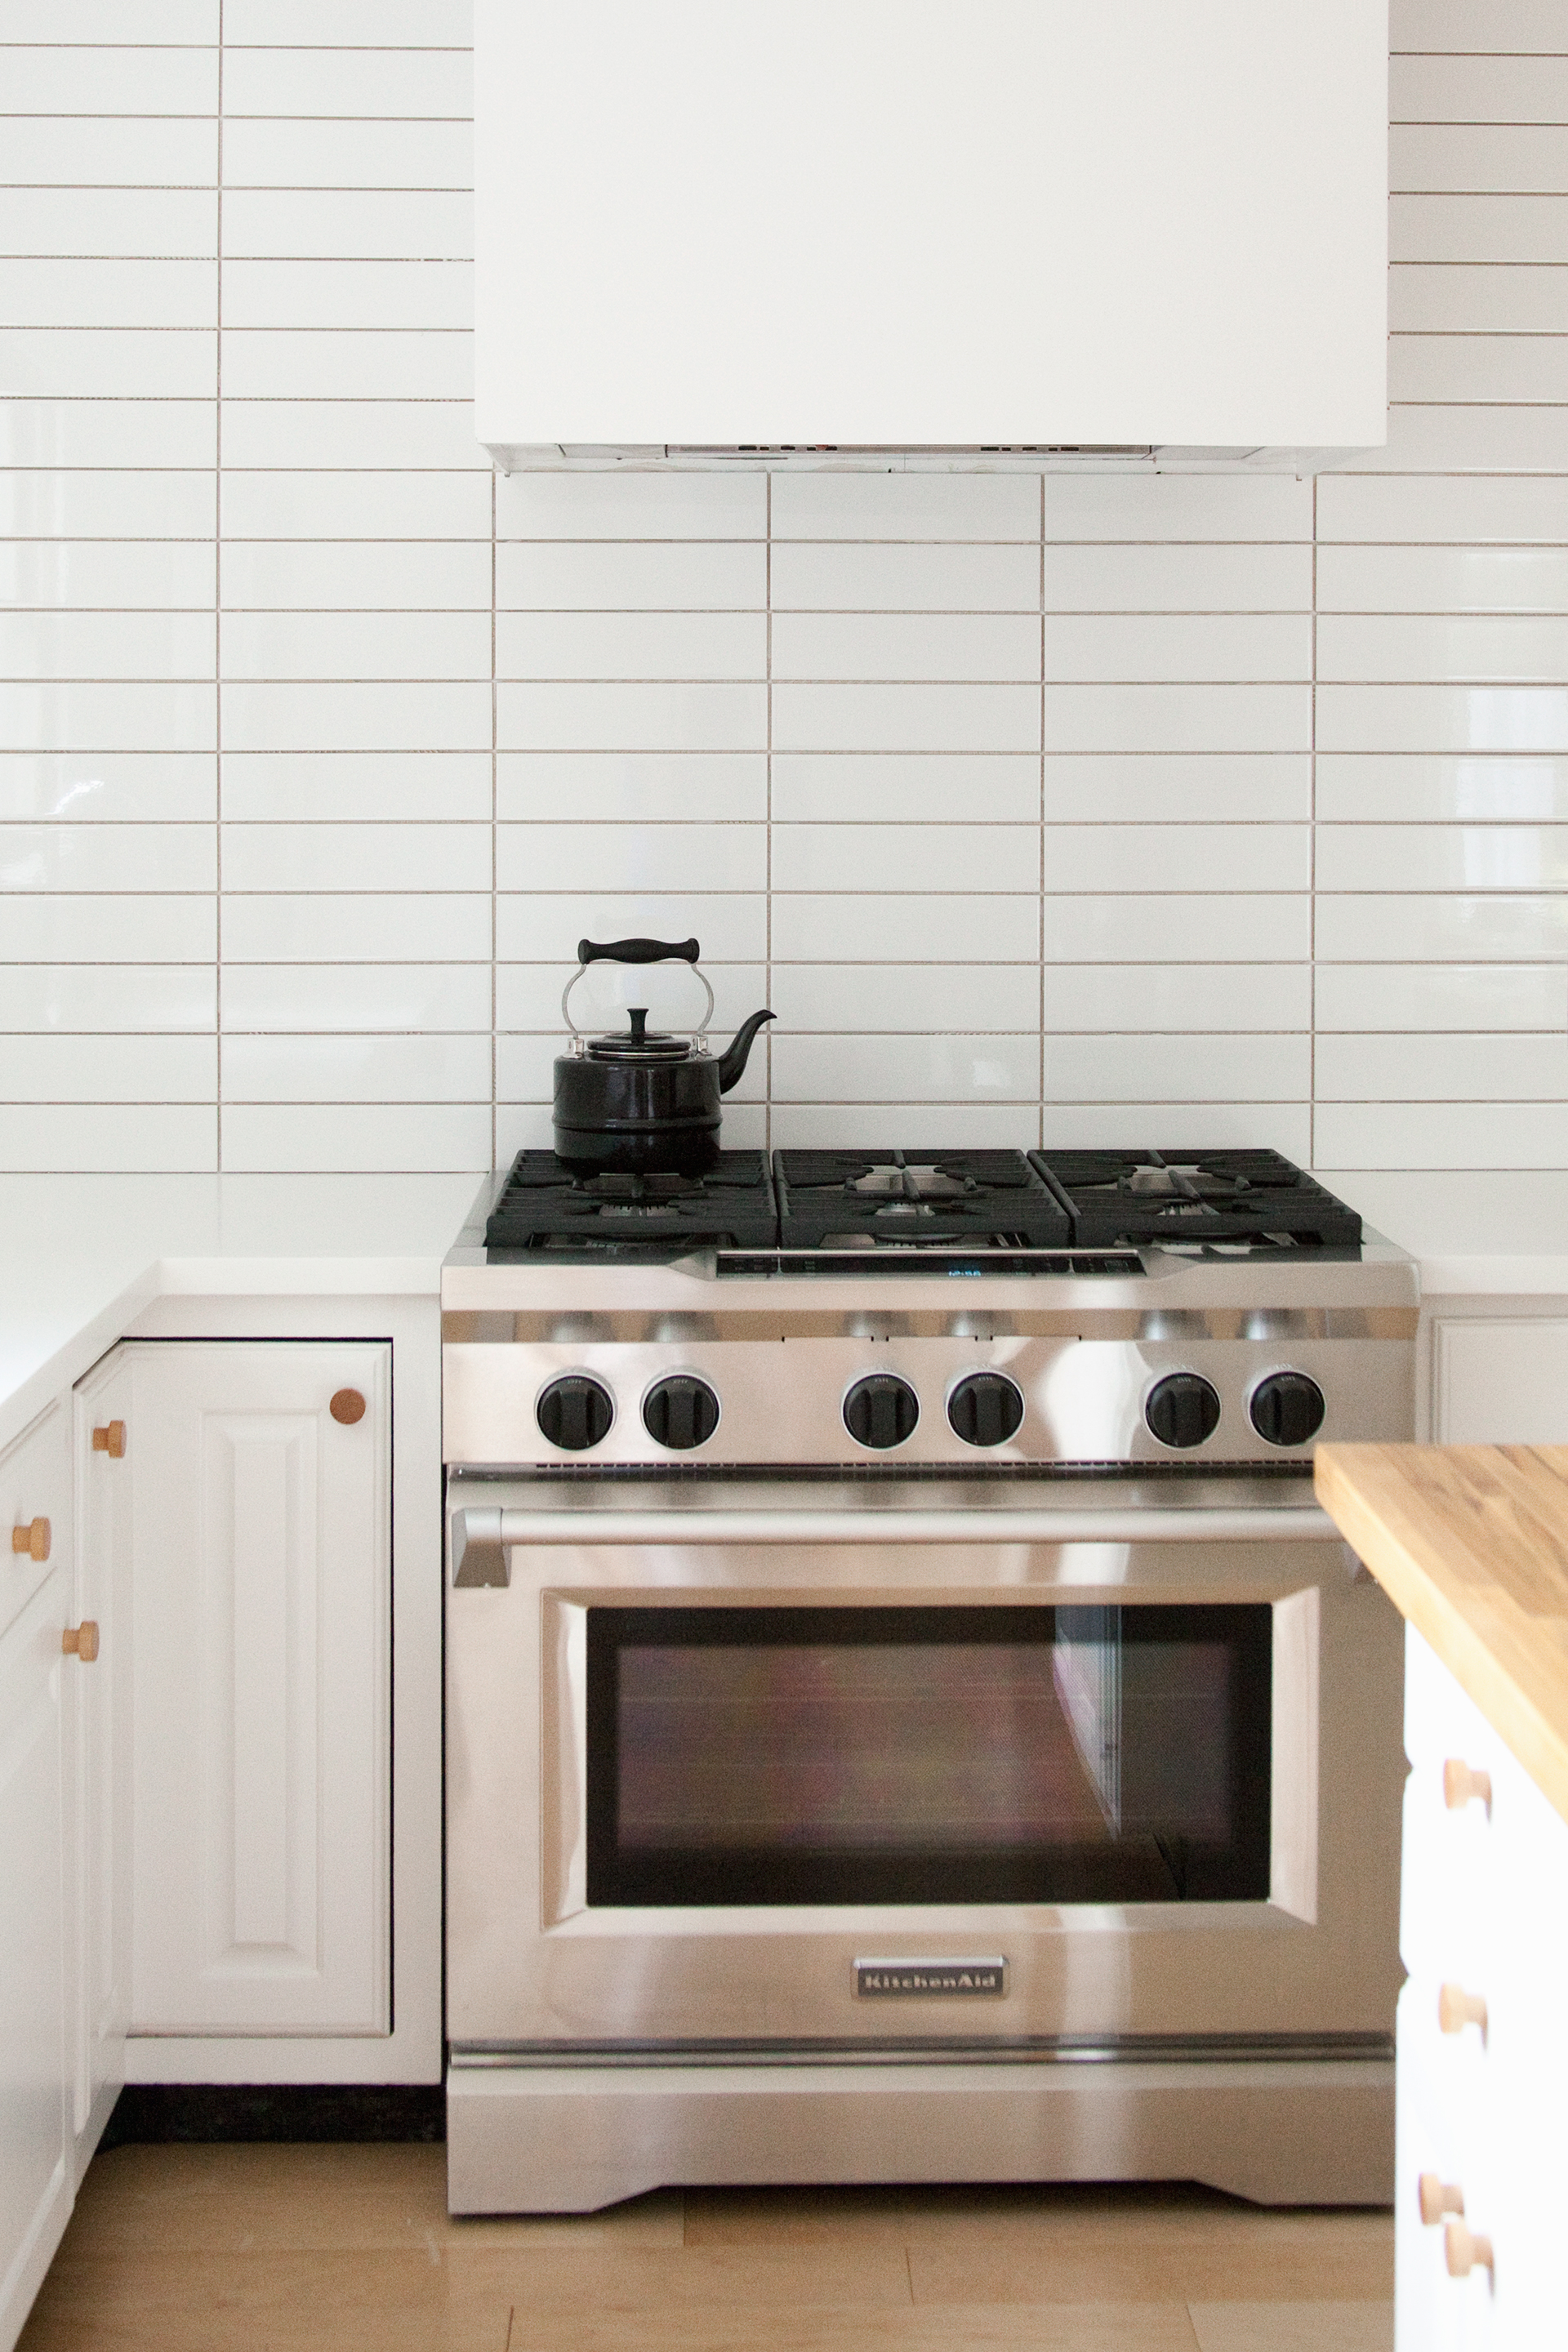 Kitchen Renovation Stack Bond Subway Tile